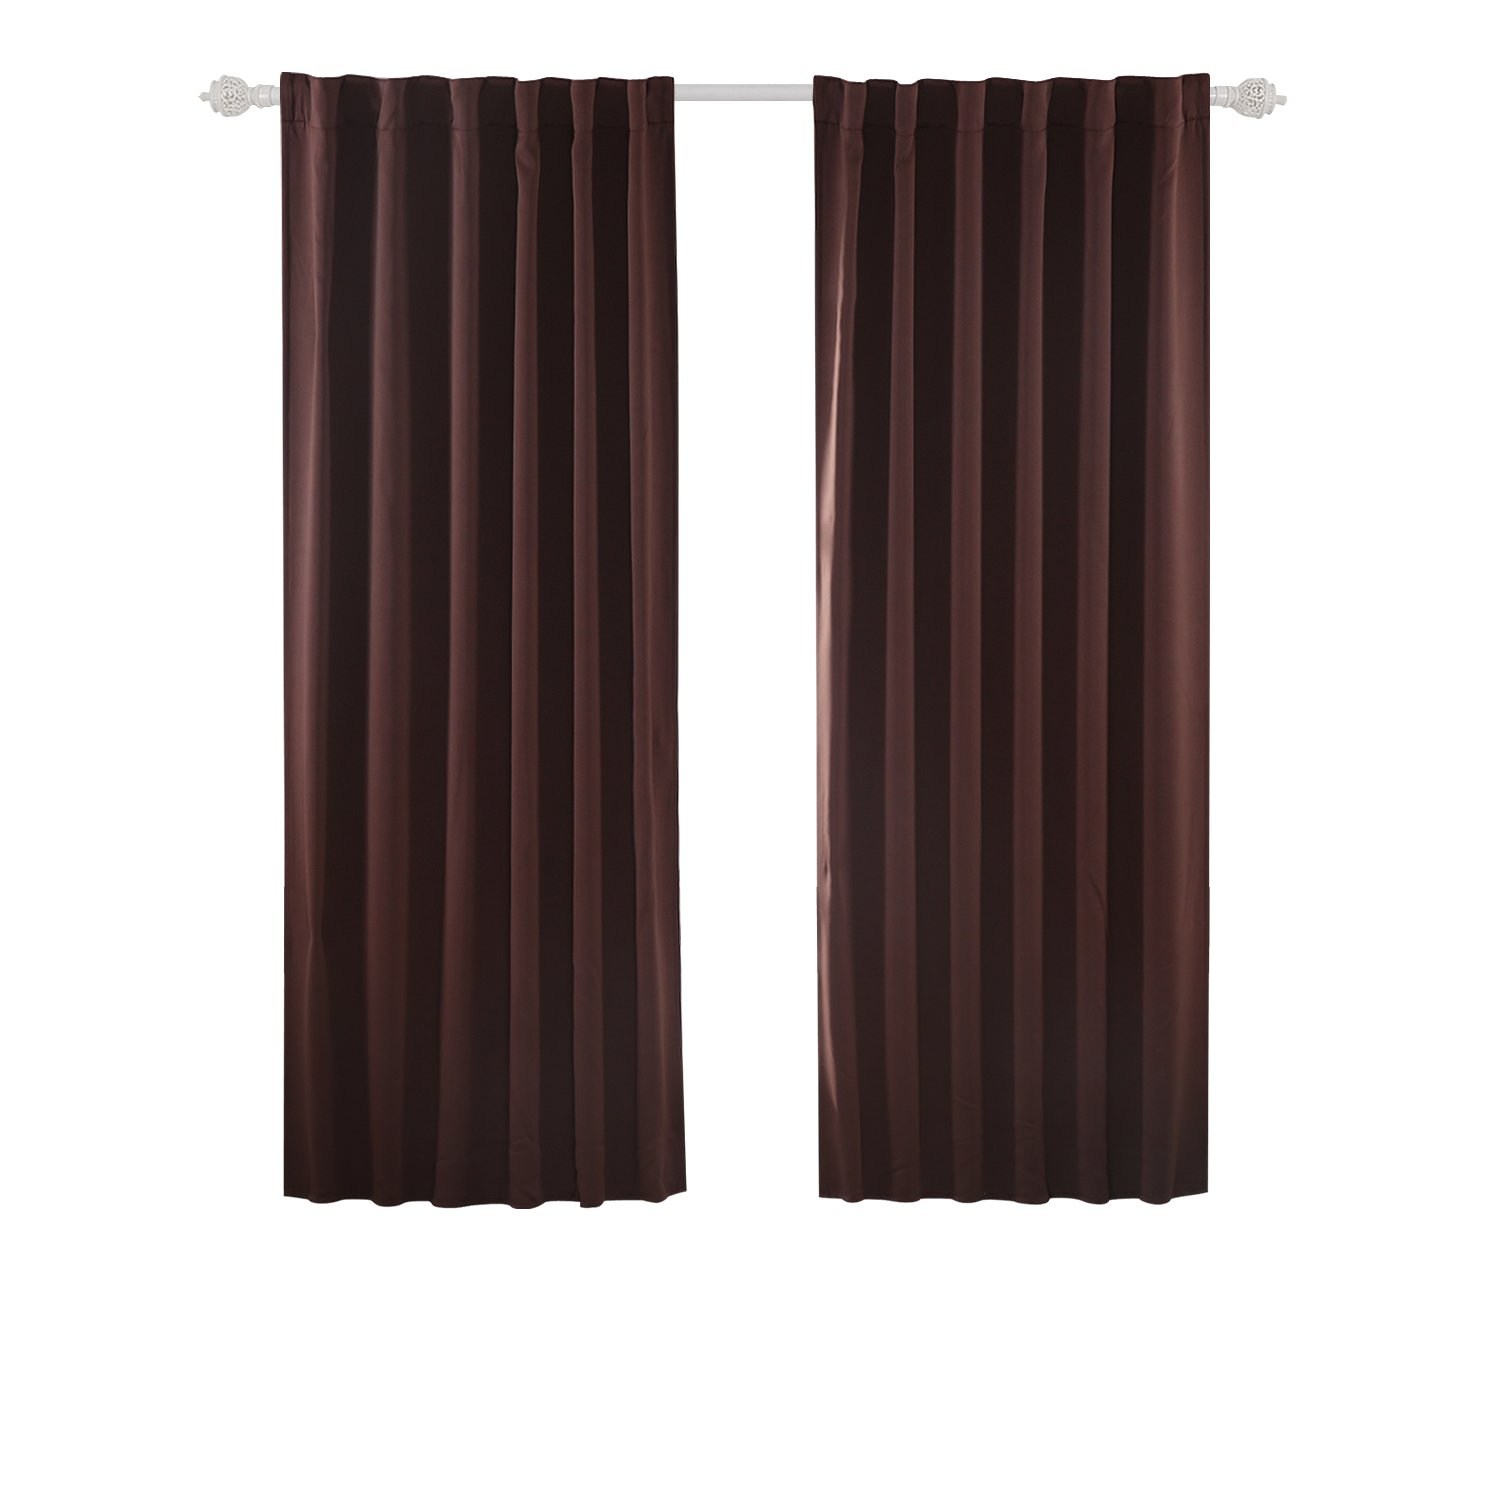 Deconovo Blackout Curtains Back Tab and Rod Pocket Curtains 2 Panels 42W x 45L Inch, Brown